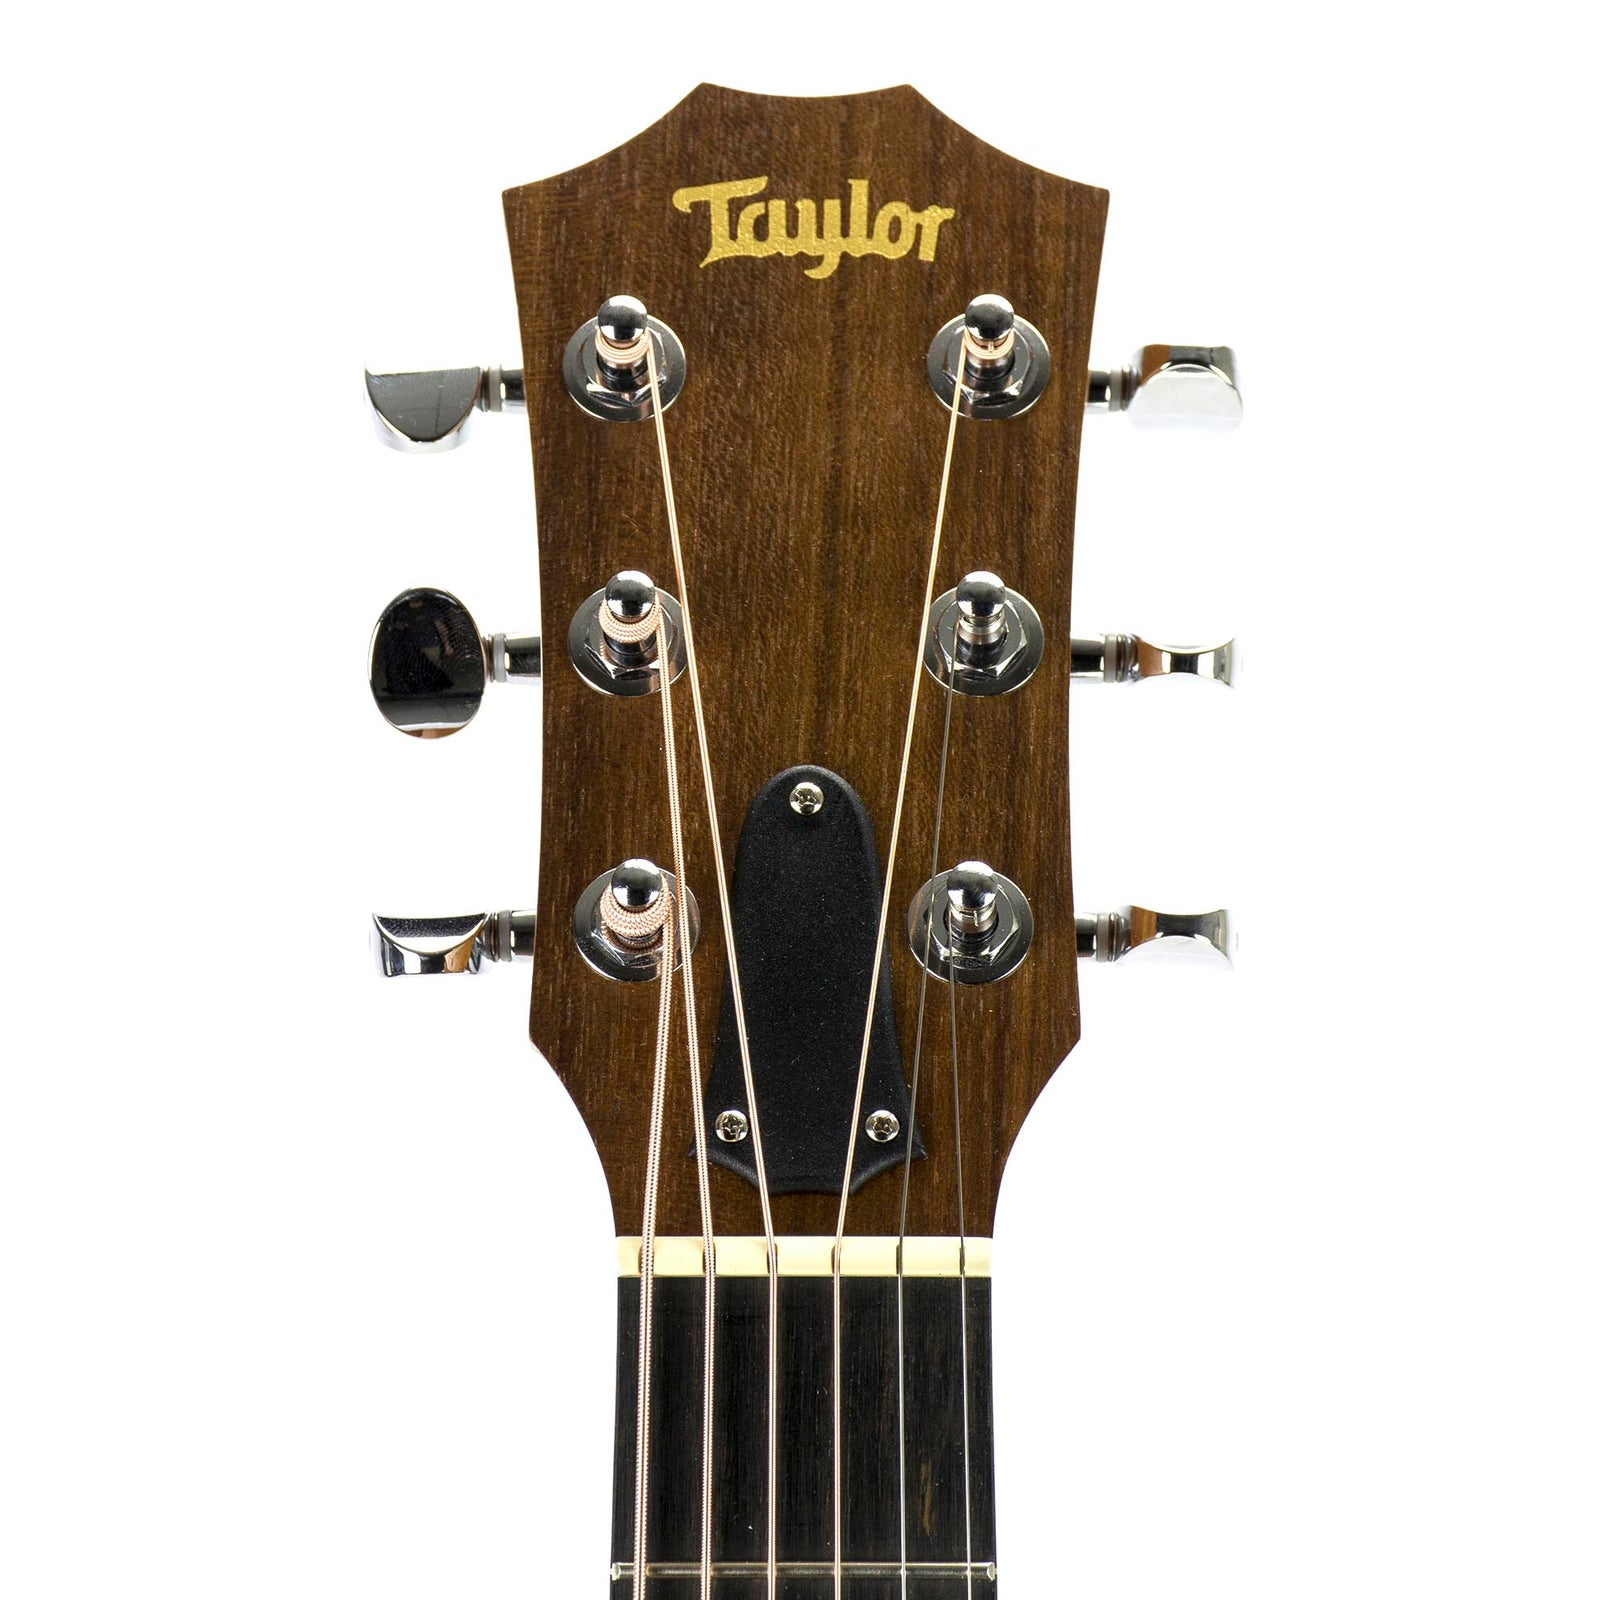 Taylor GS Mini-E FS Limited - Figured Sapele - Roadshow Exclusive